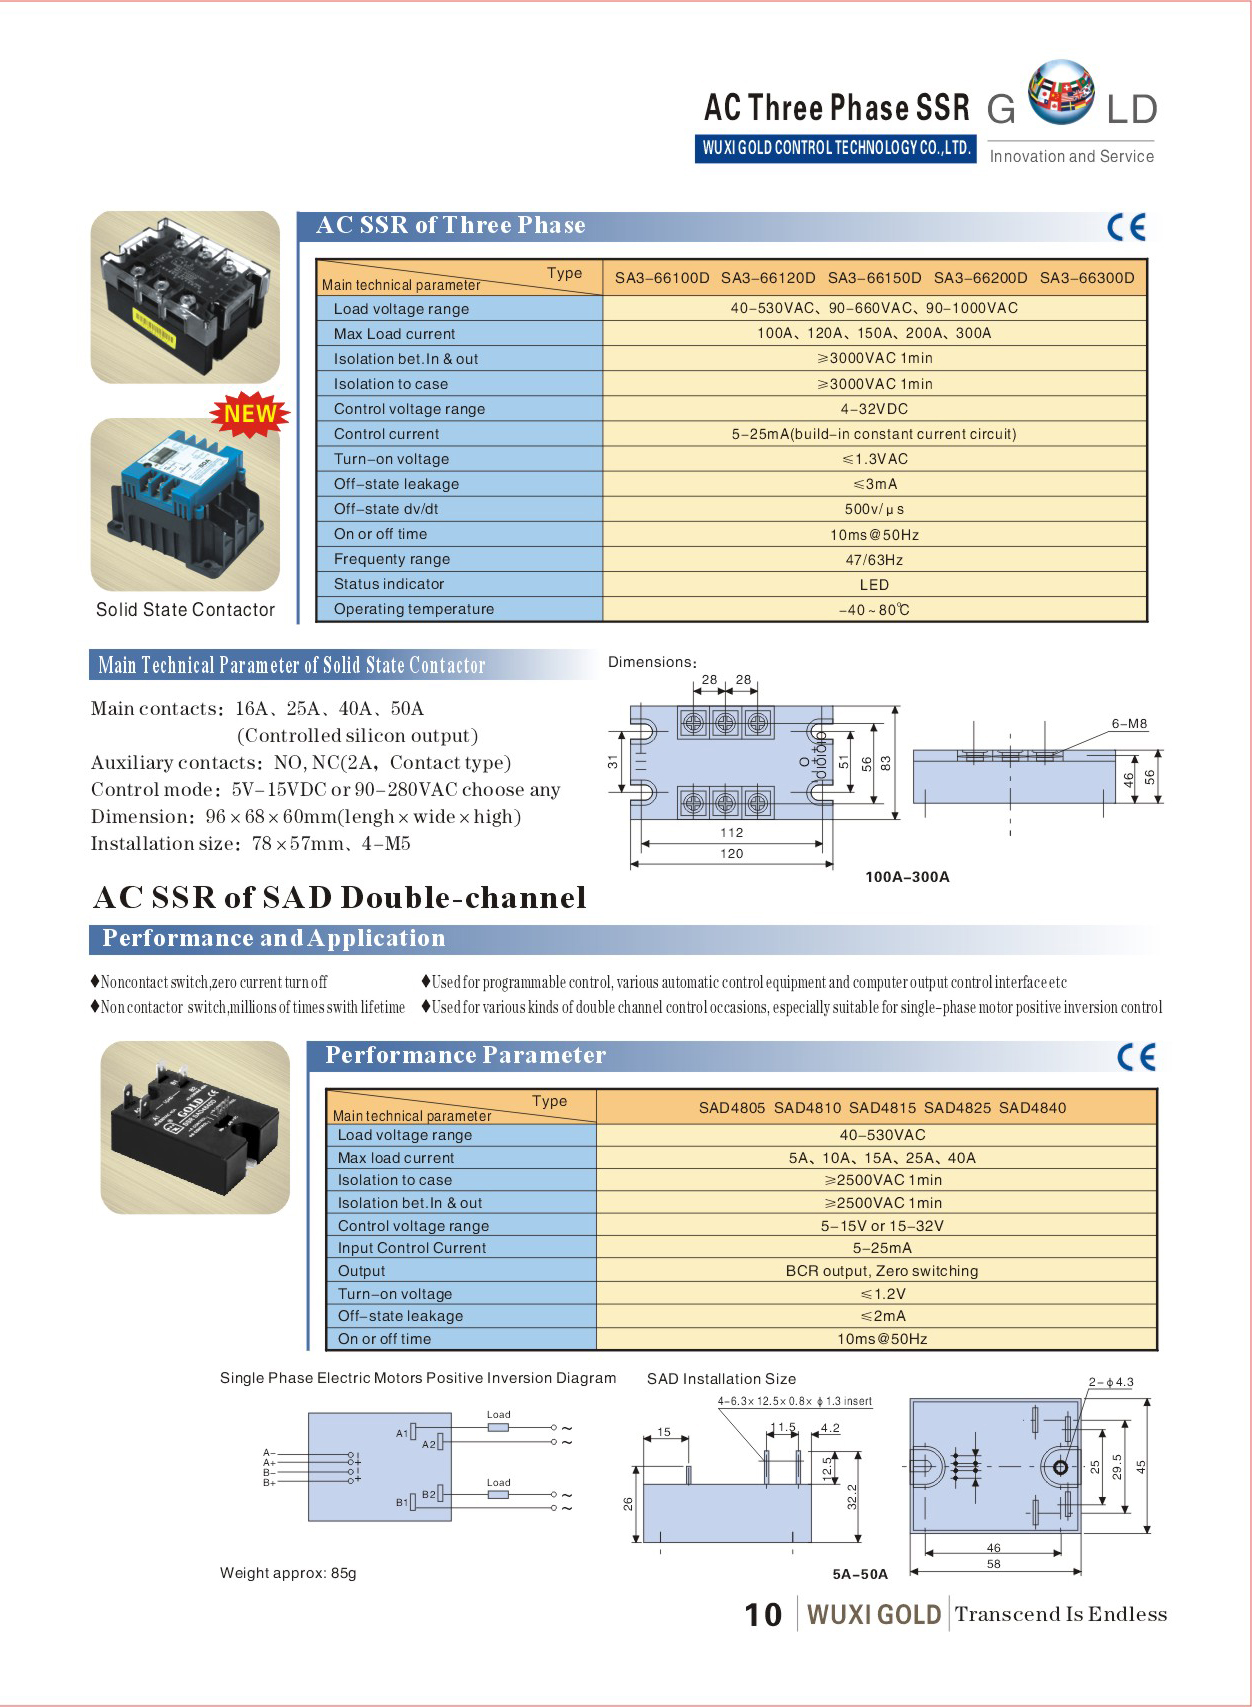 Ac Ssr Of Three Phase Solid State Relaysa3 Series100a 300a Relay Load Off Leakage 3ma 10 Status Indicator In Led And Out On 11 Operating Temperature 4080c 12 Output Zero Switching Random